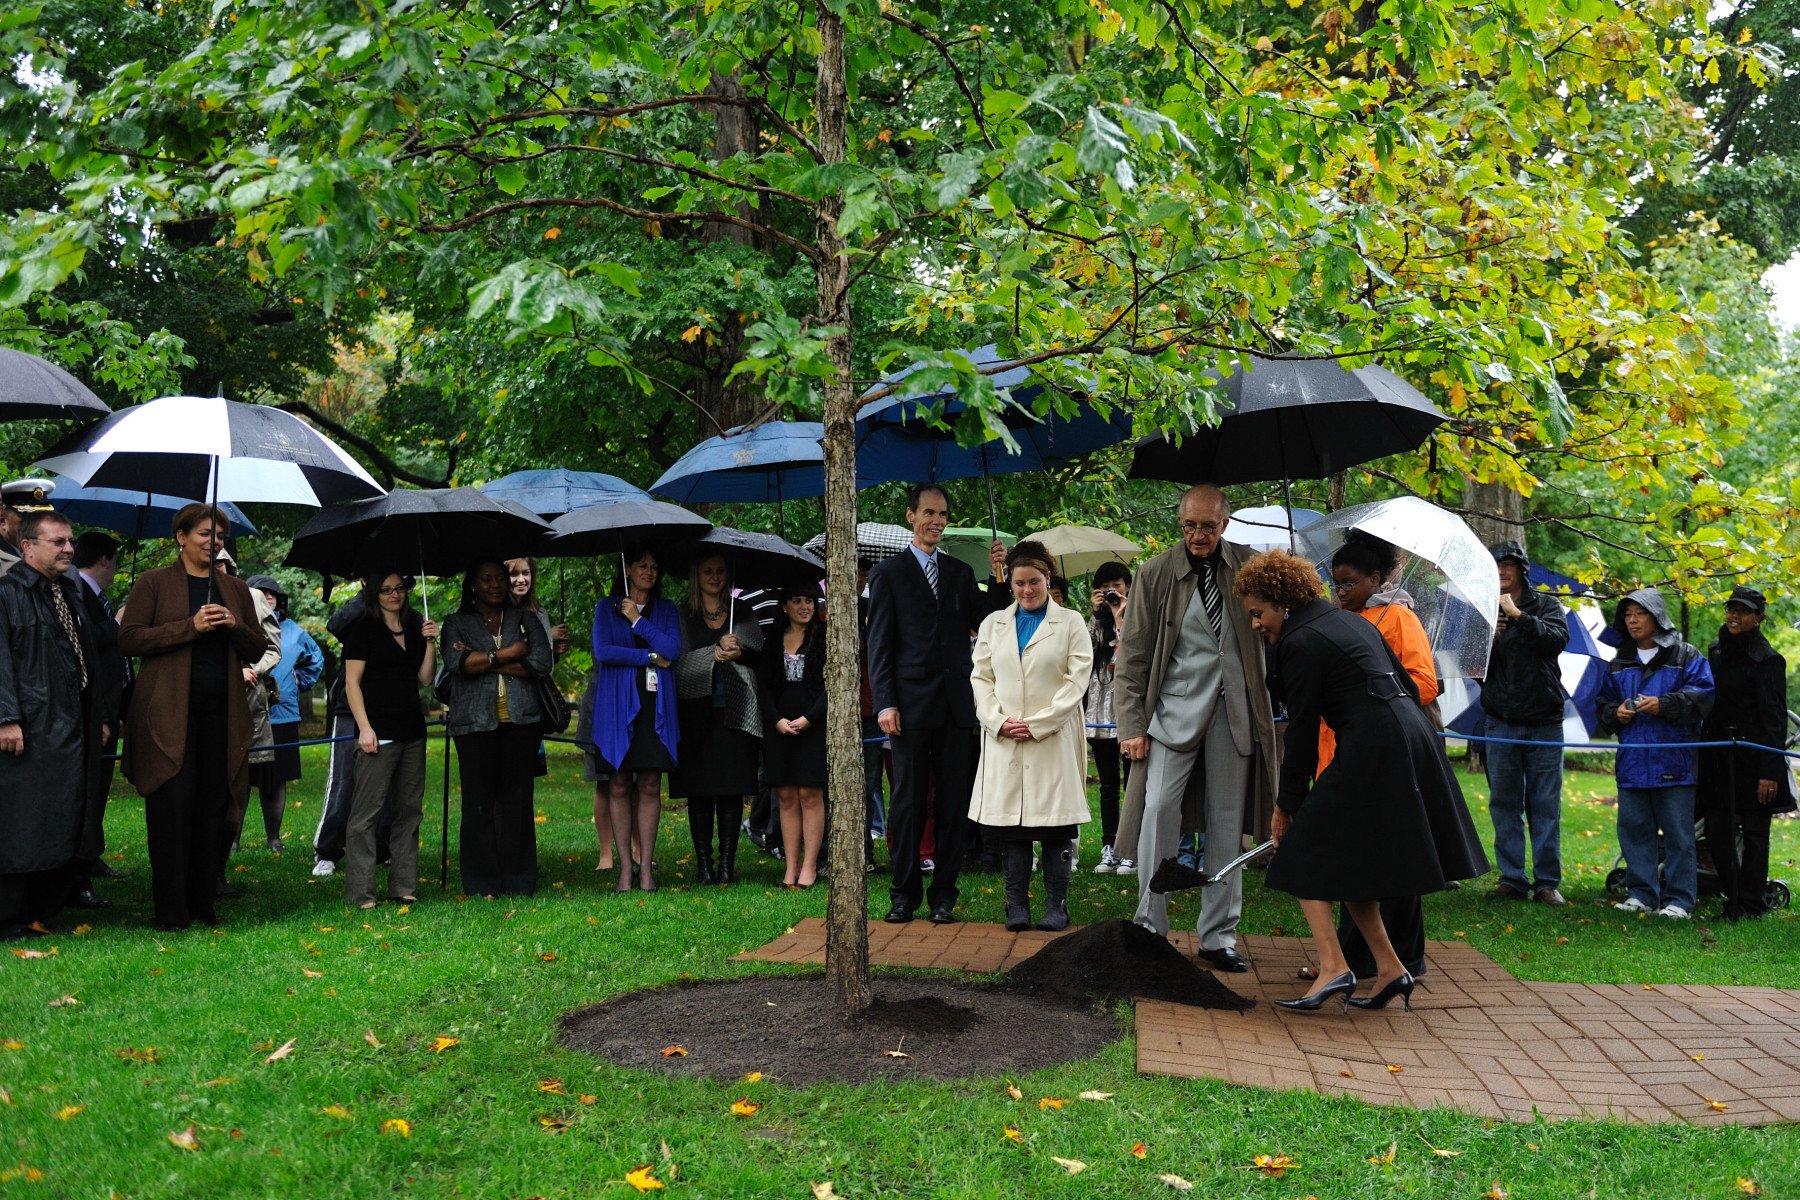 In the presence of Rideau Hall staff and members of the public, Their Excellencies and Marie-Éden planted an oak tree. A total of 128 trees are now planted on the 32-hectare (79 acres) grounds of the official residence of the governor general.